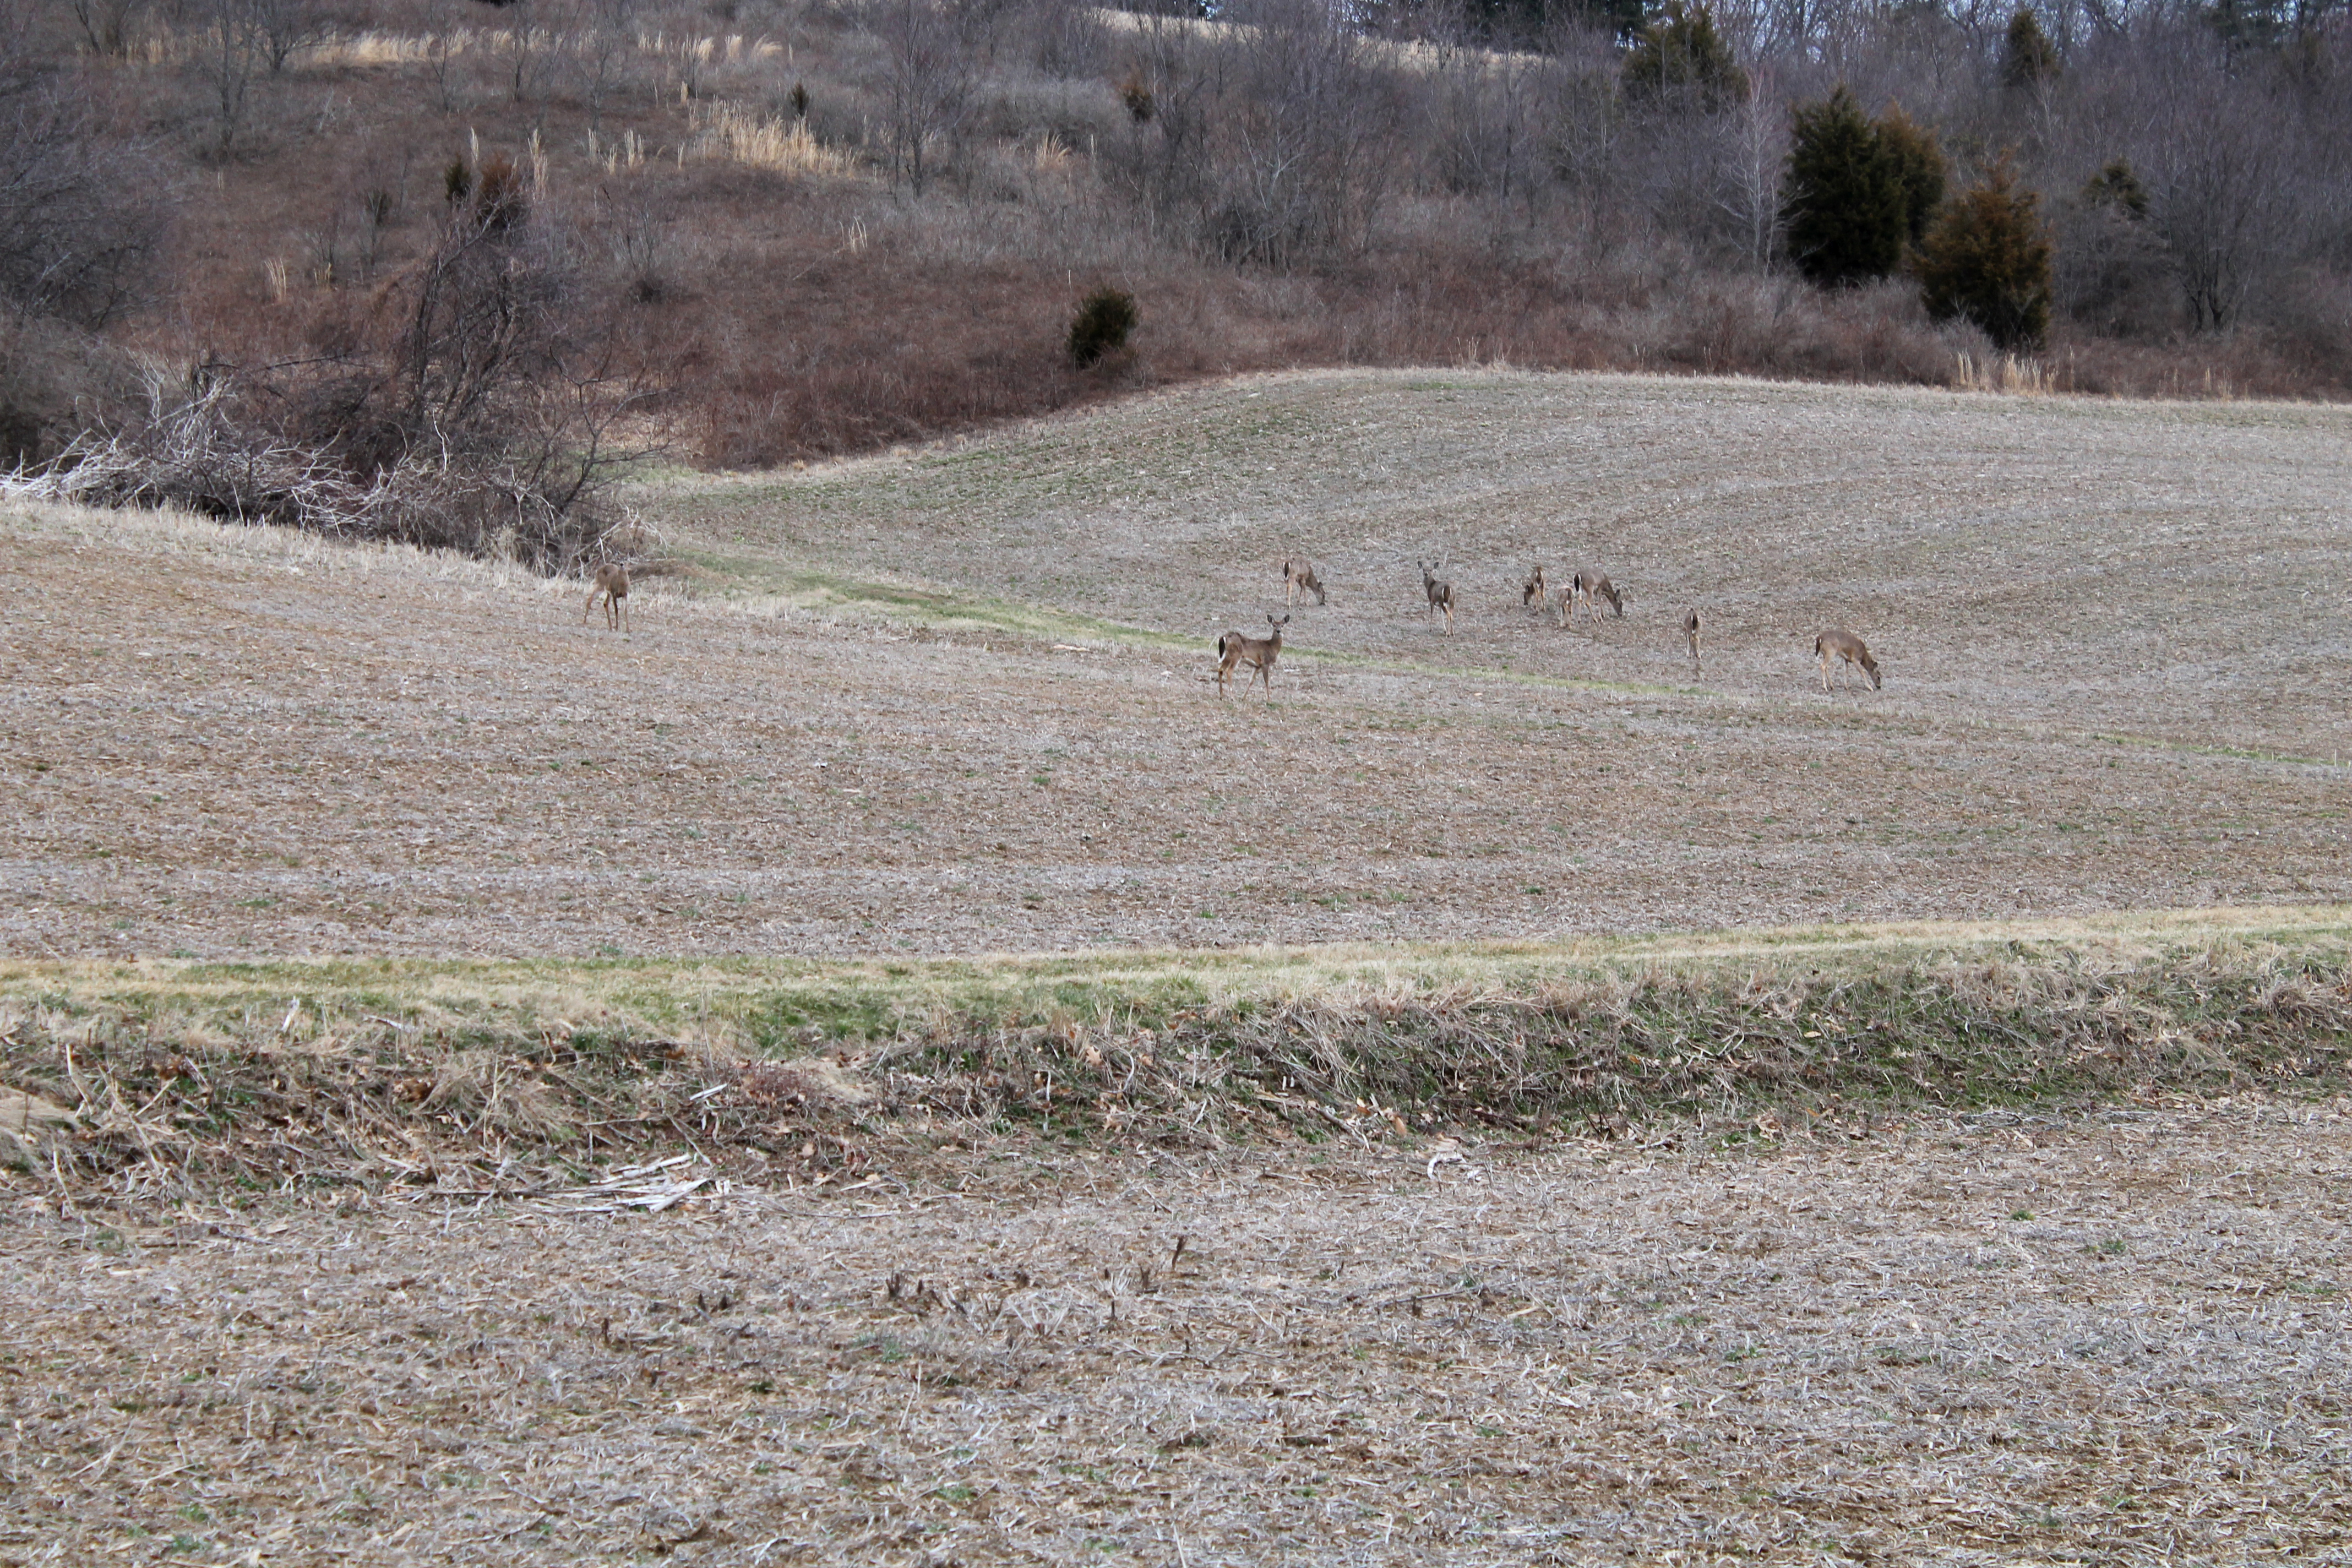 Deer in field | Work in Progress Wednesday: Photo Editing | Making the Most Blog